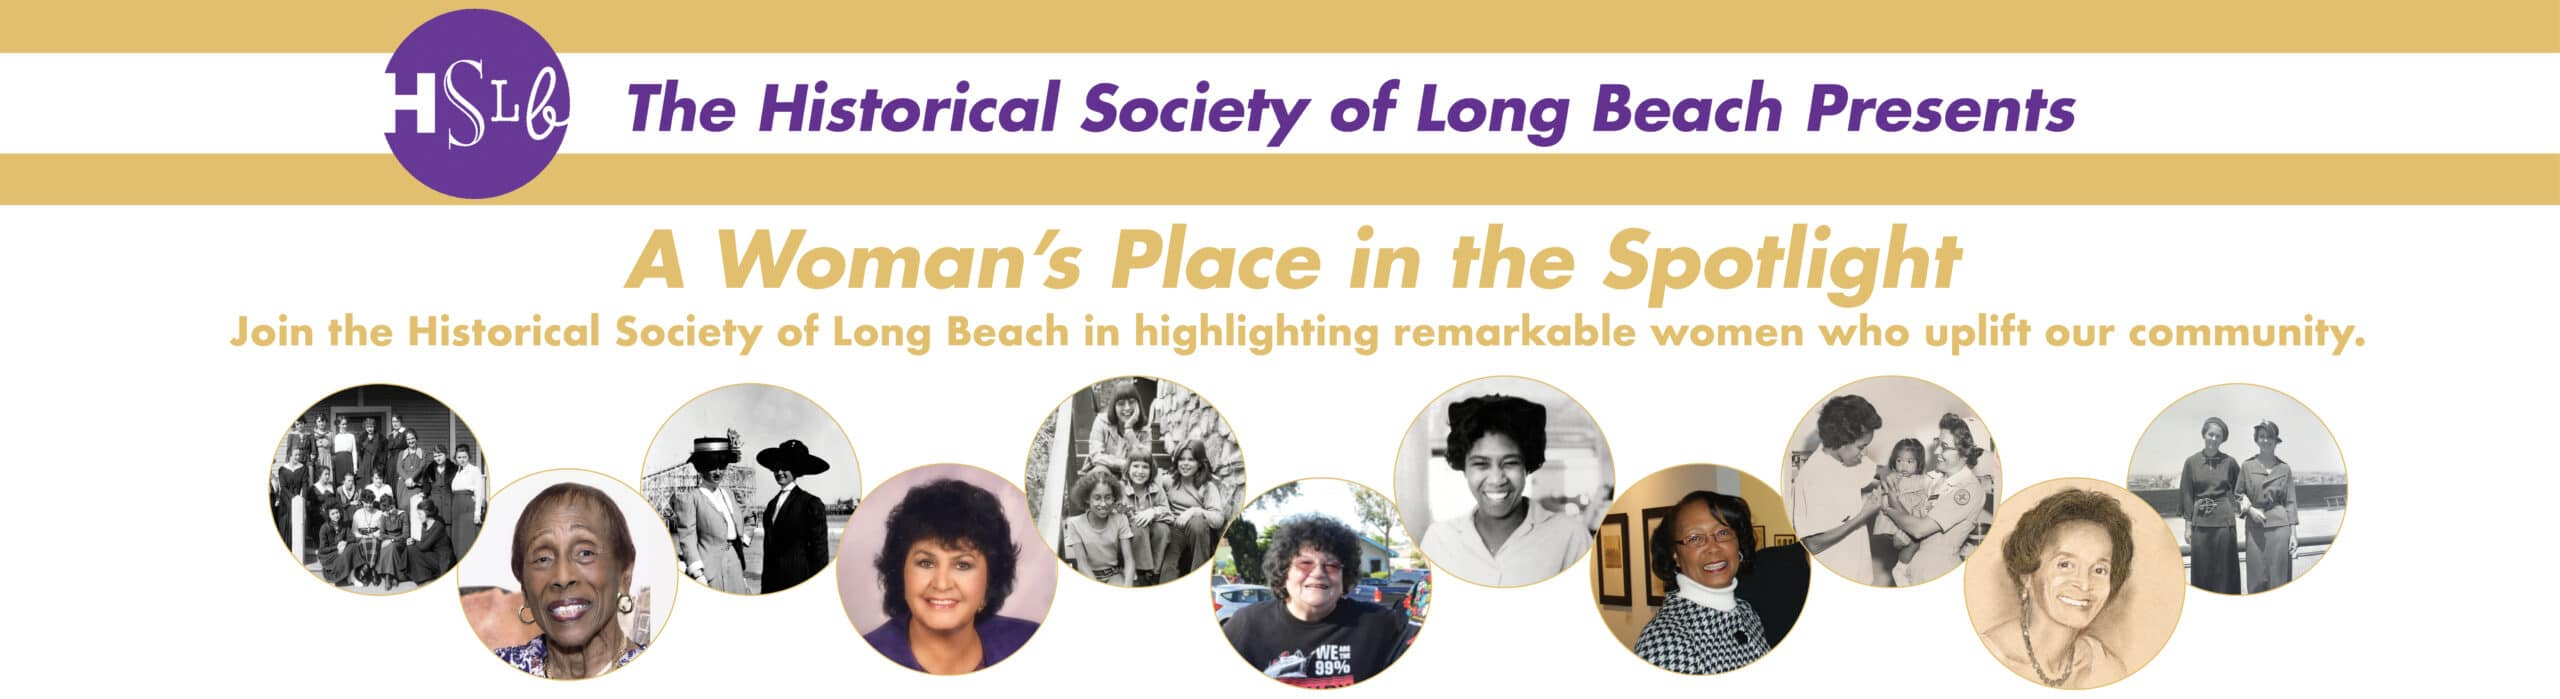 a woman's place in the spotlight HSLB community